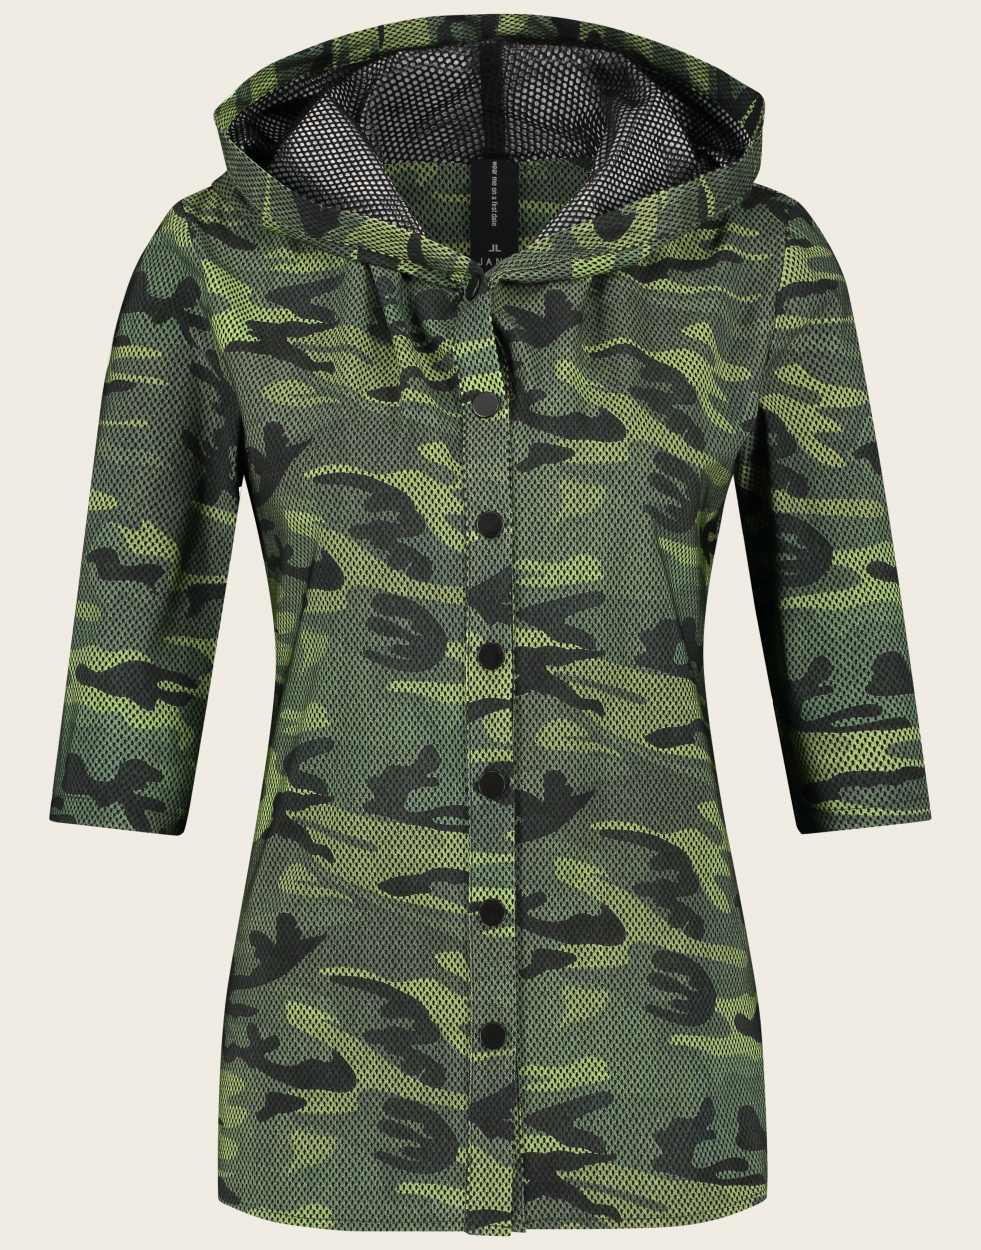 Jane Lushka Bluse in Camouflage Optik grün